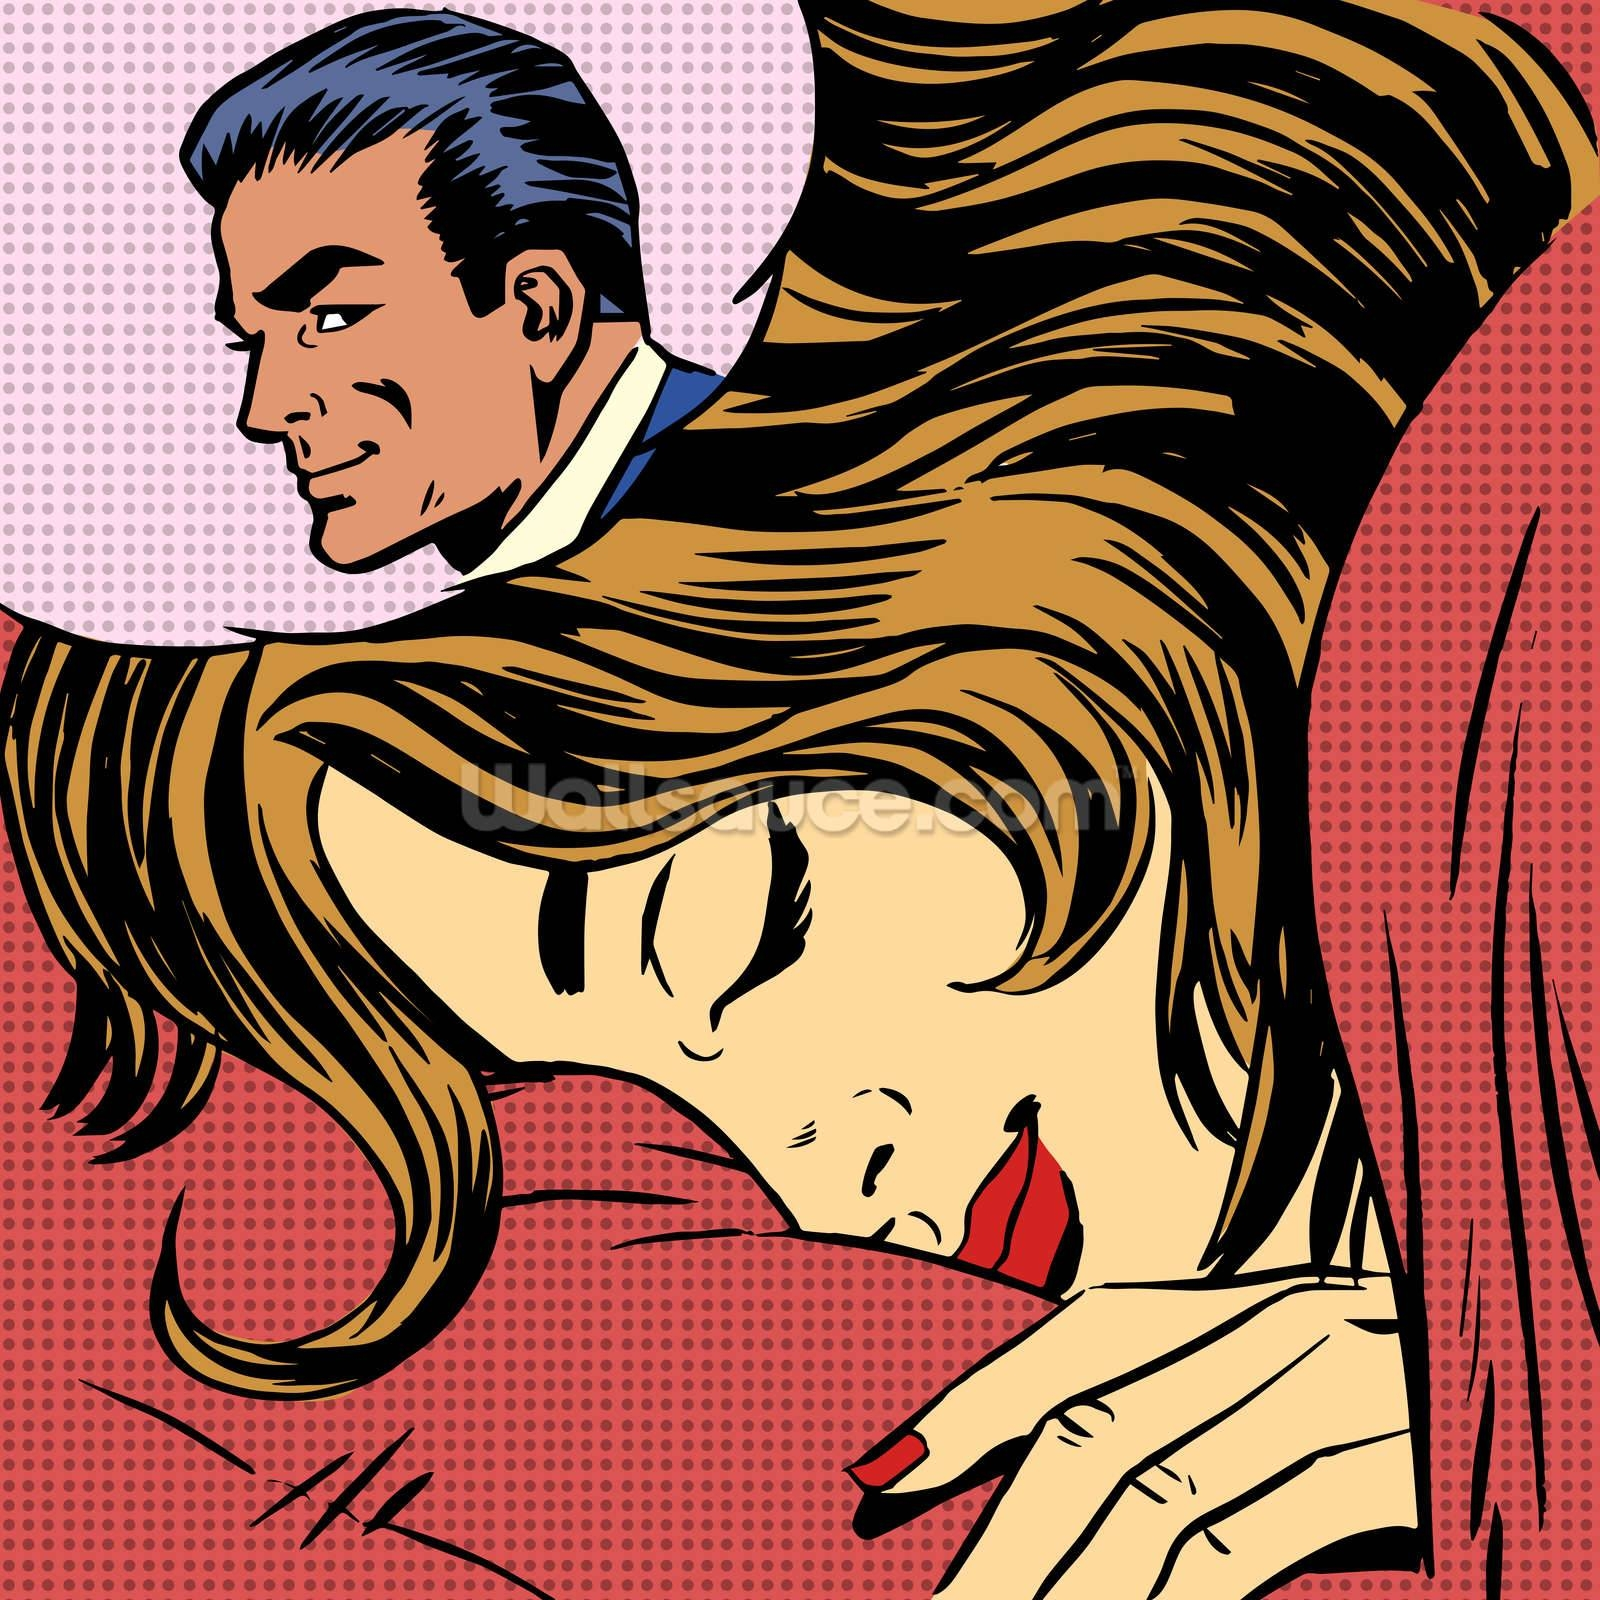 Pop Art Dream Romance Wallpaper Wall Mural | Wallsauce Europe For Most Recent Pop Art Wallpaper For Walls (View 13 of 20)